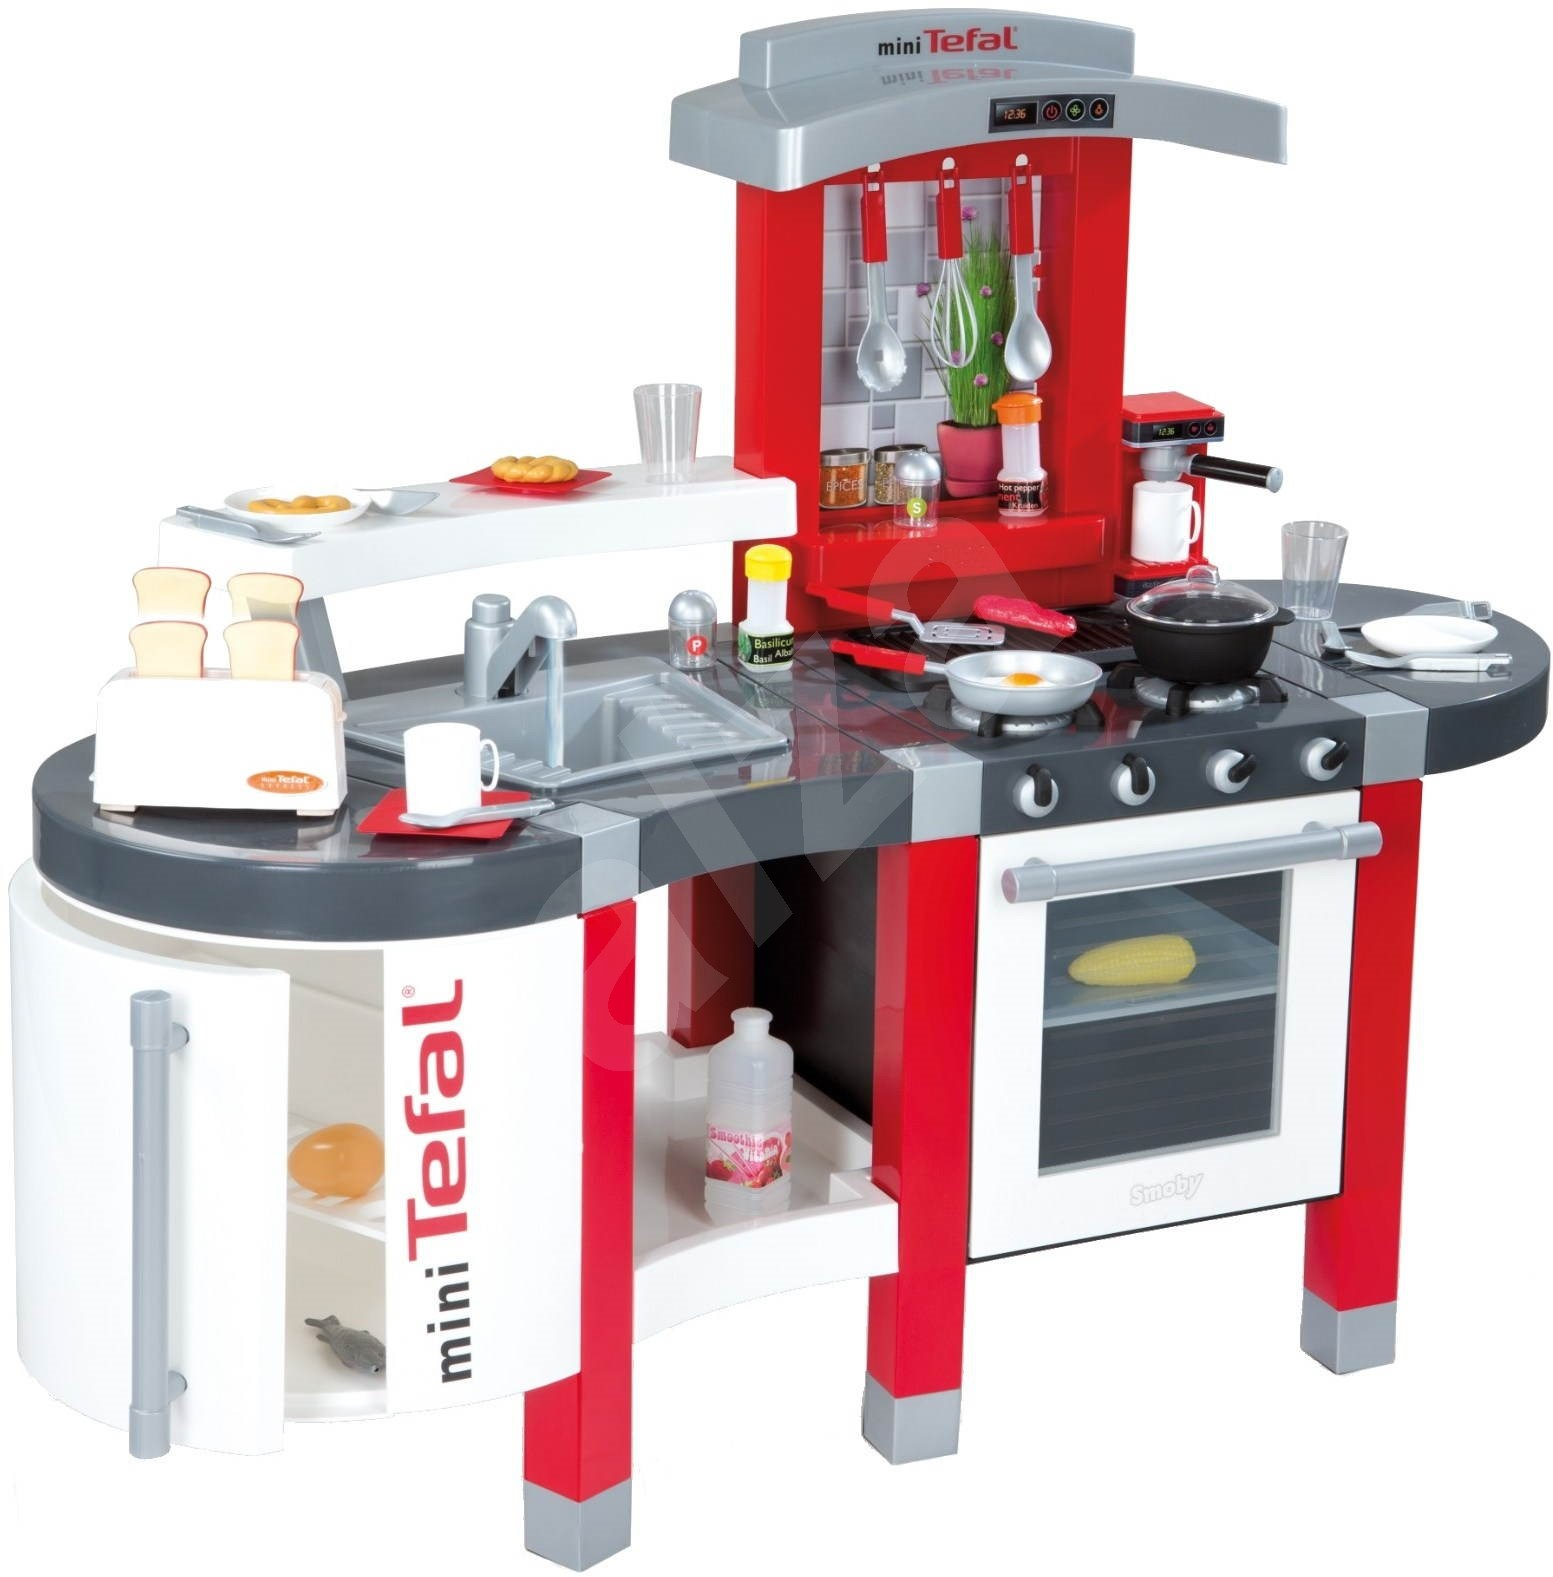 Tefal super chef kitchen with running water play set toys for Kitchen set toy kingdom